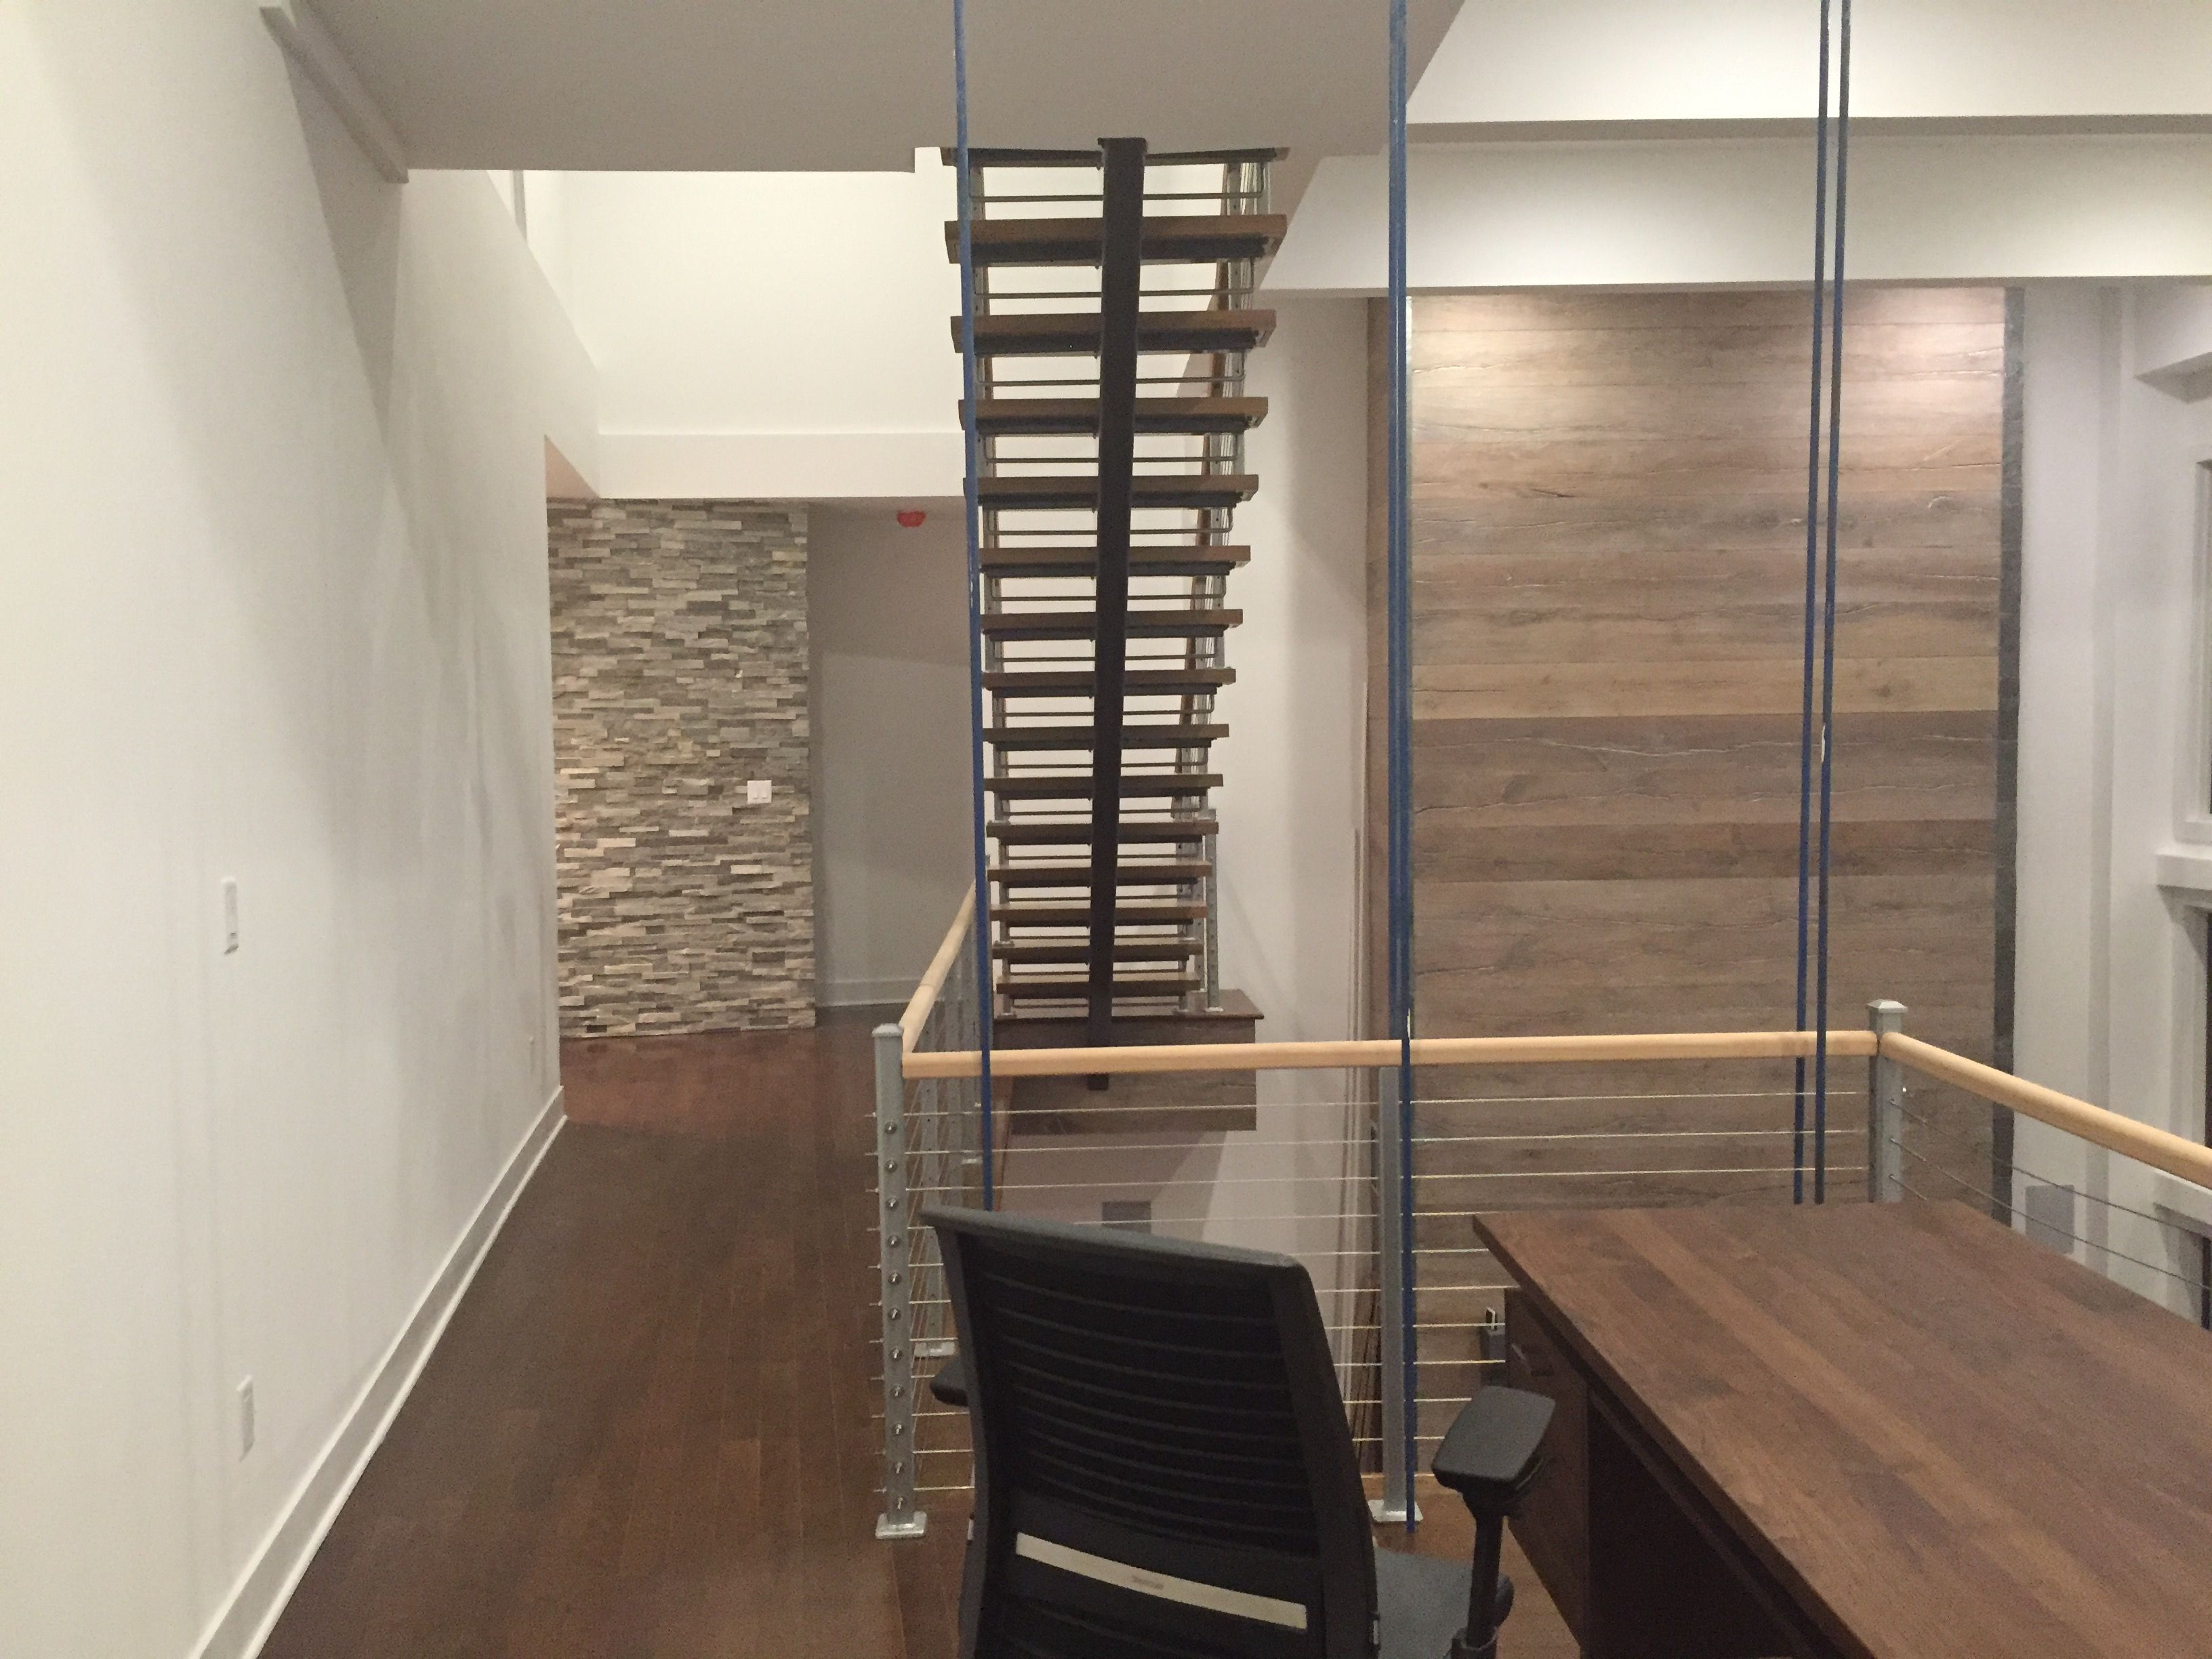 Best Residential Monostringer Floating Stair With Cable Railing 400 x 300